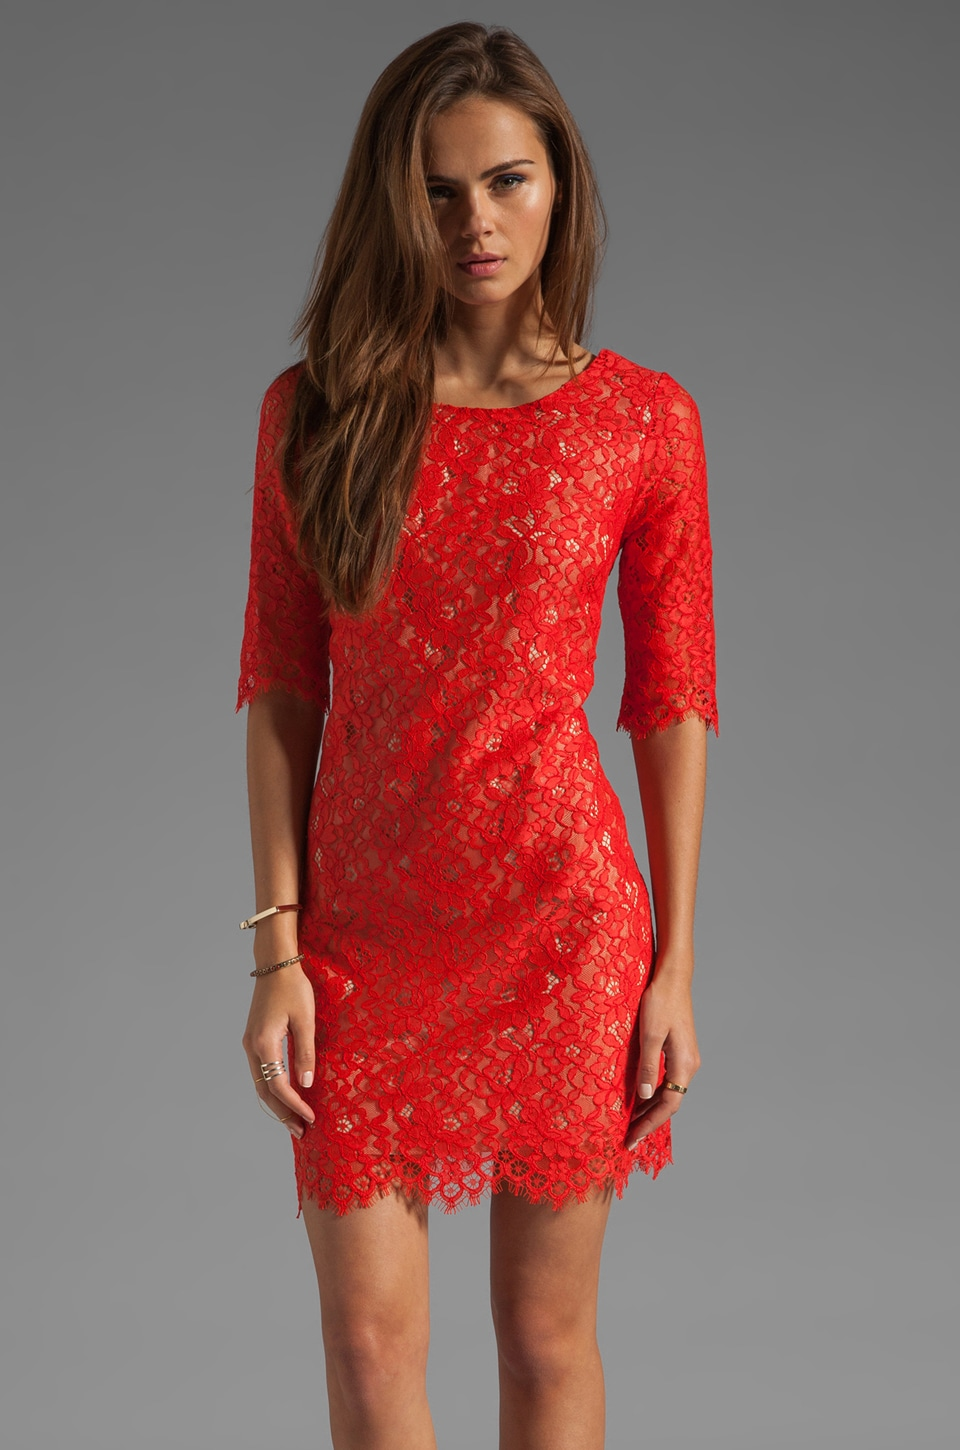 Shoshanna Lace Lisa Shift Dress in Rhubarb